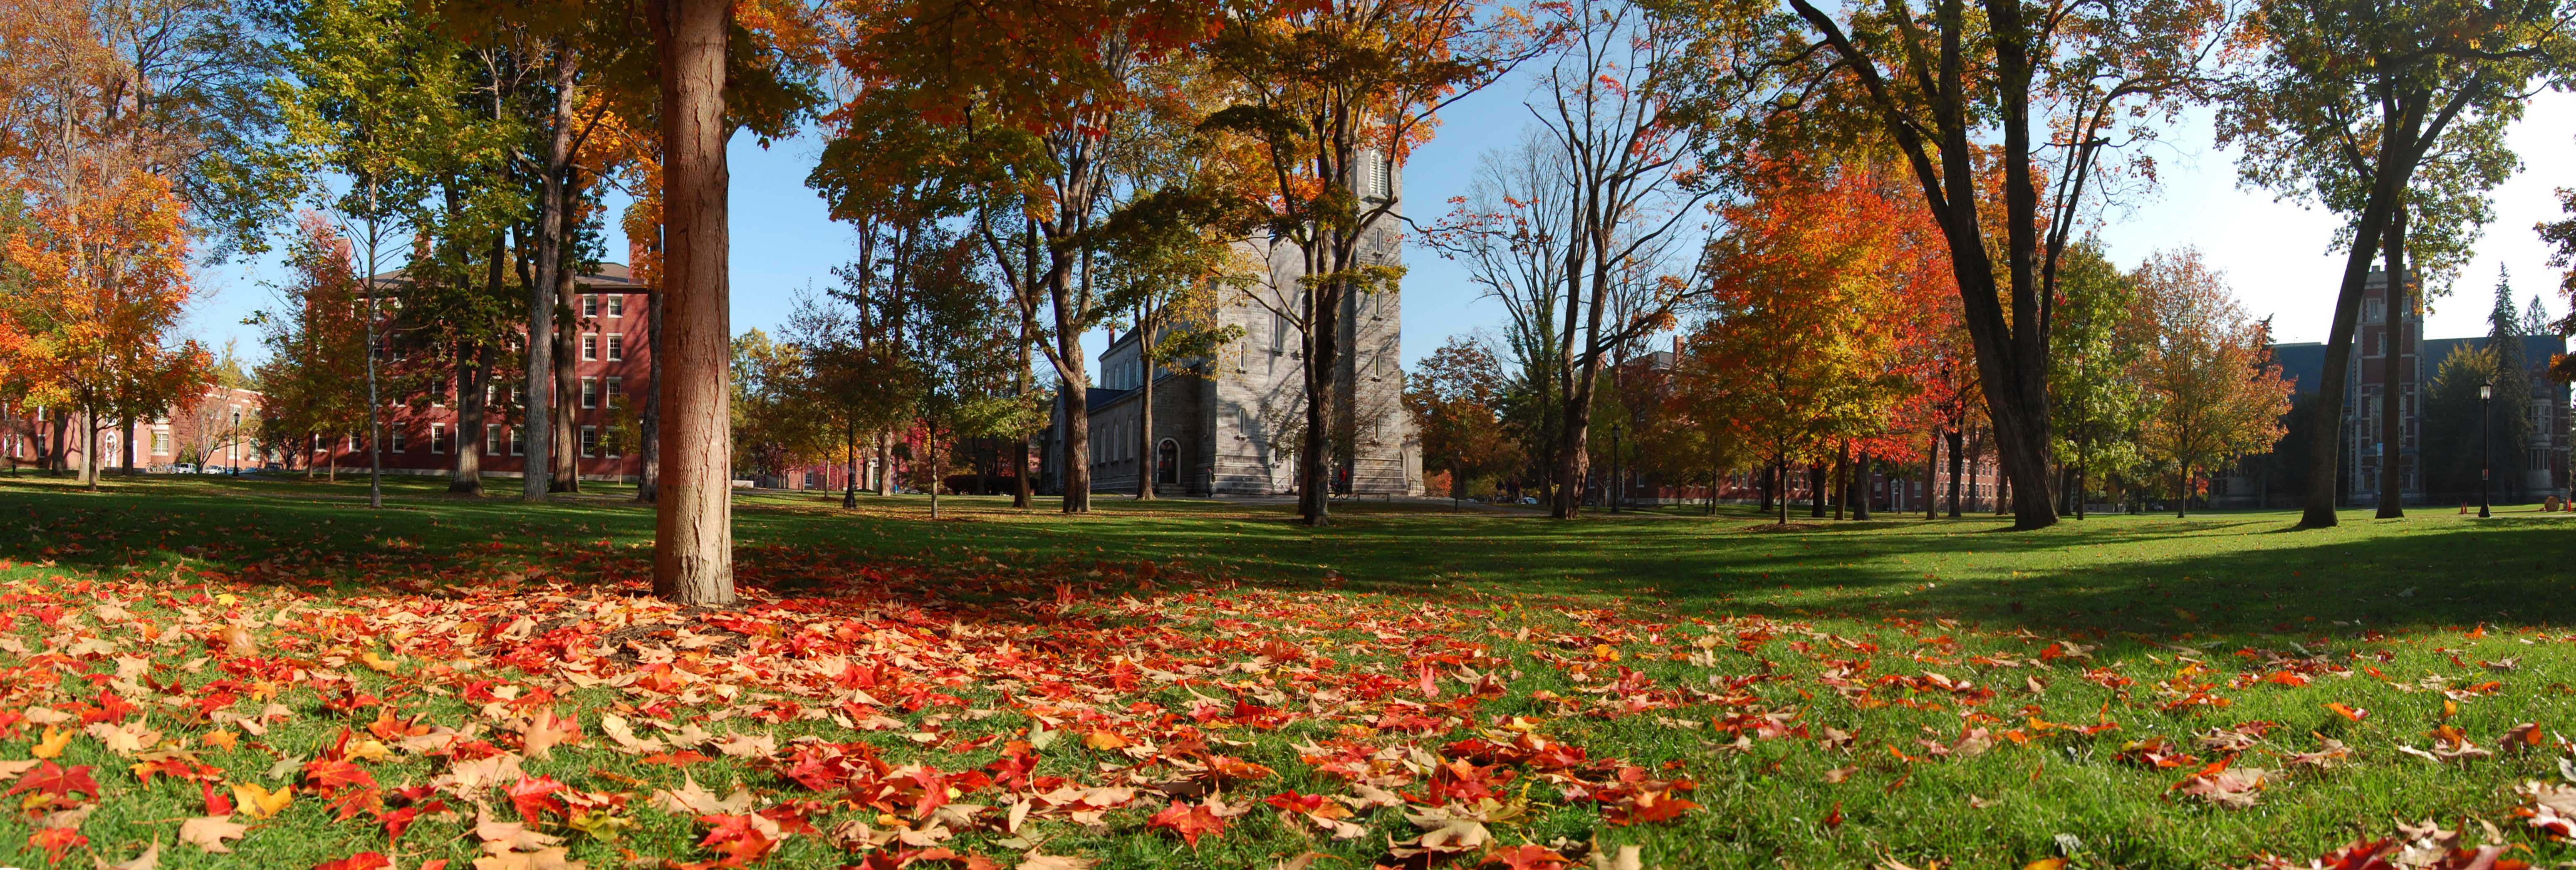 The Bowdoin College Quad in October in 2009, by user ilove2run of Wikimedia Commons